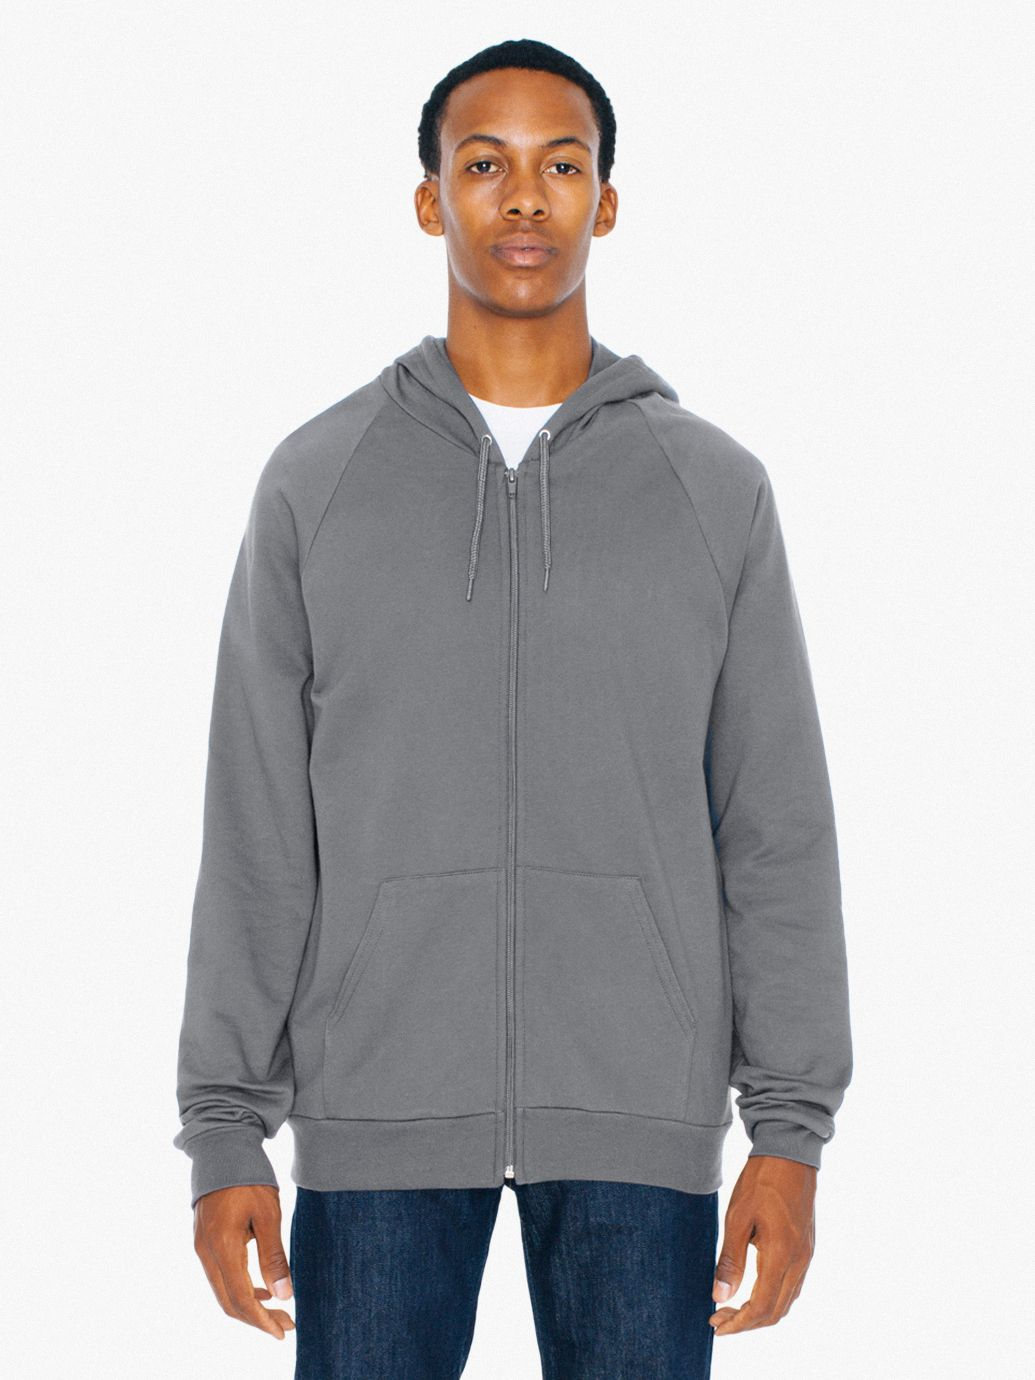 AMA Sweater Hooded Zip California Fleece